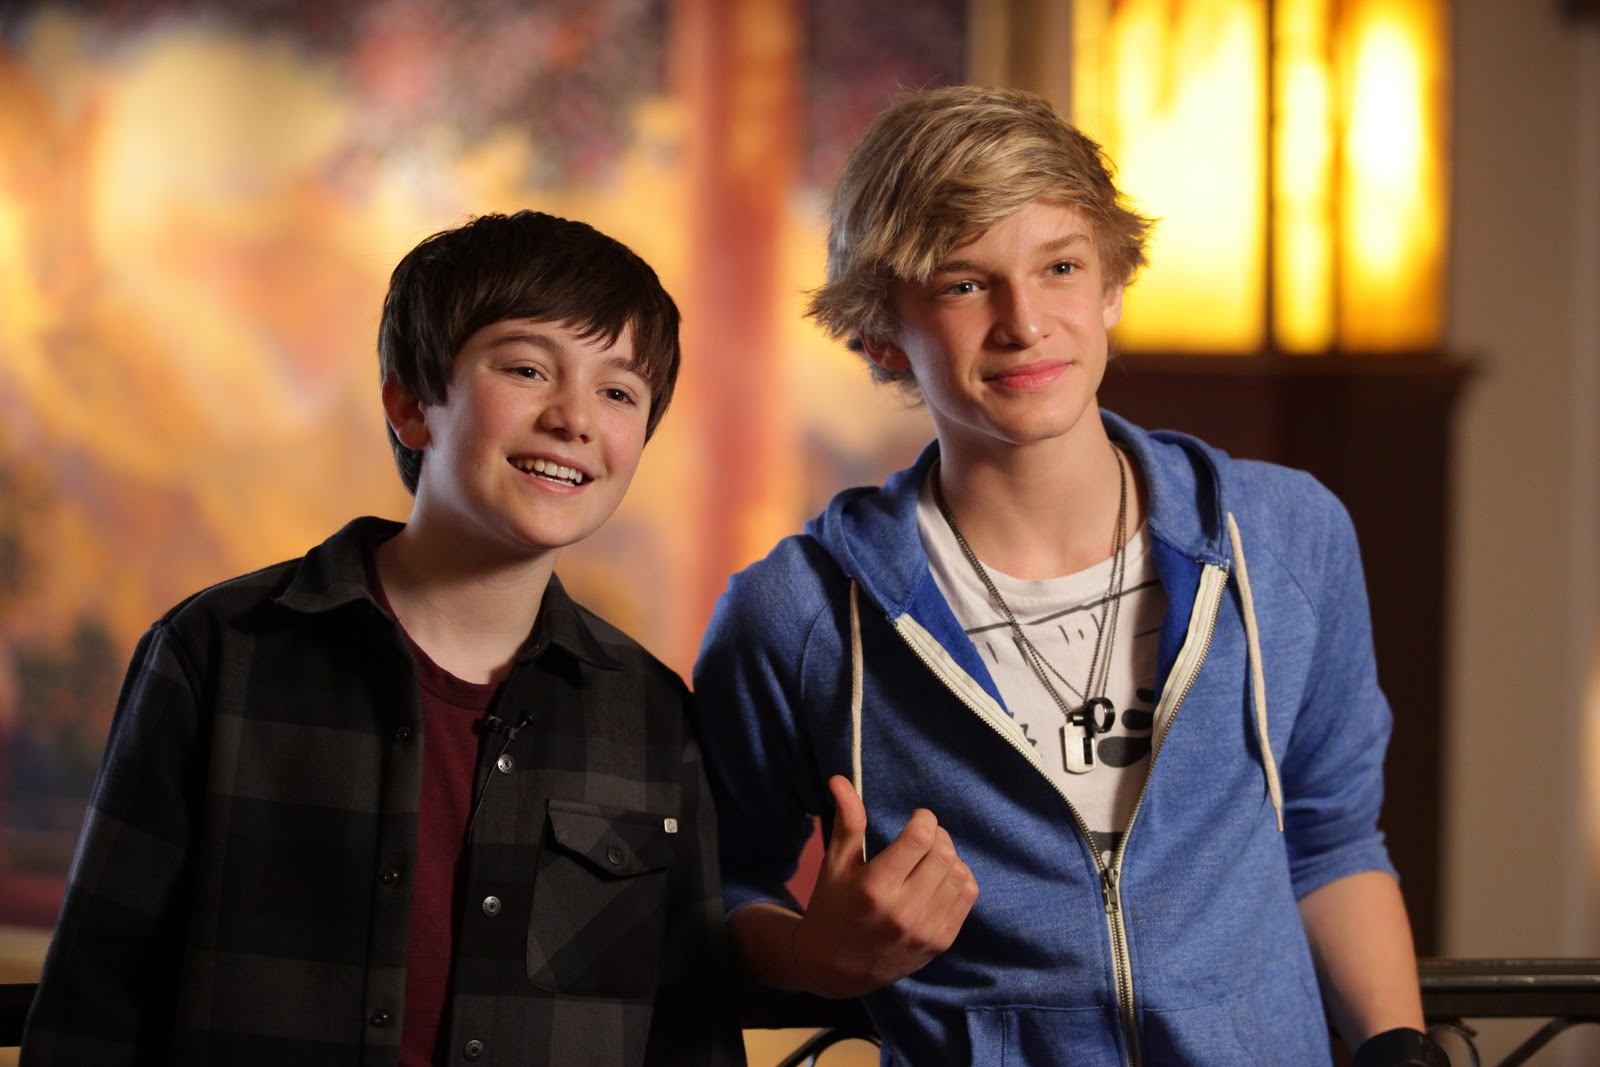 On the teen beat greyson chance and cody simpson meet fans at the if you didnt know greyson chance and cody simpson shared the stage and gave a free concert at the grove in los angeles feb 26 m4hsunfo